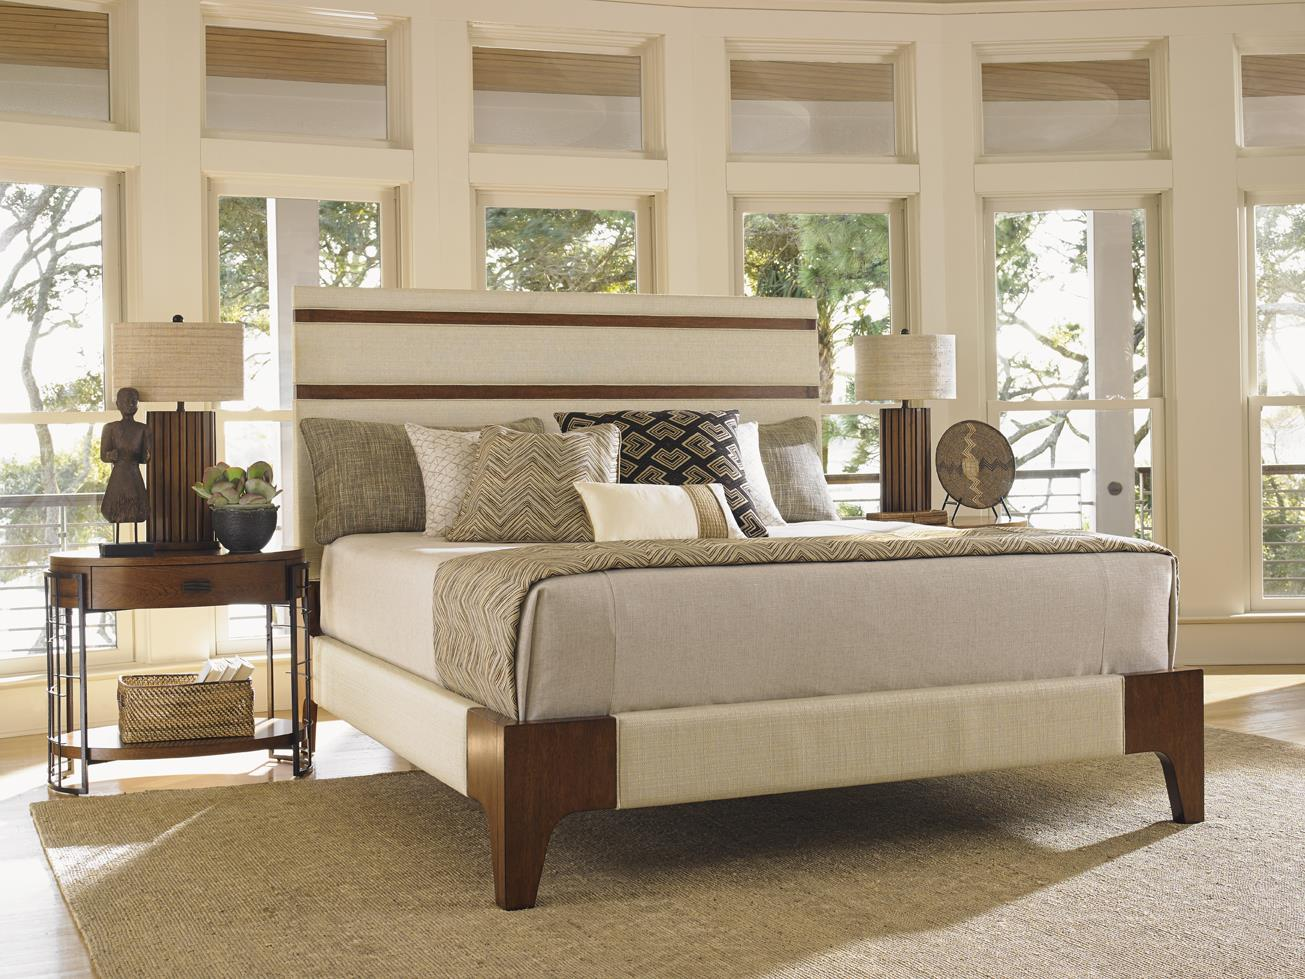 Island Fusion (556) by Tommy Bahama Home - Hudson\'s Furniture ...